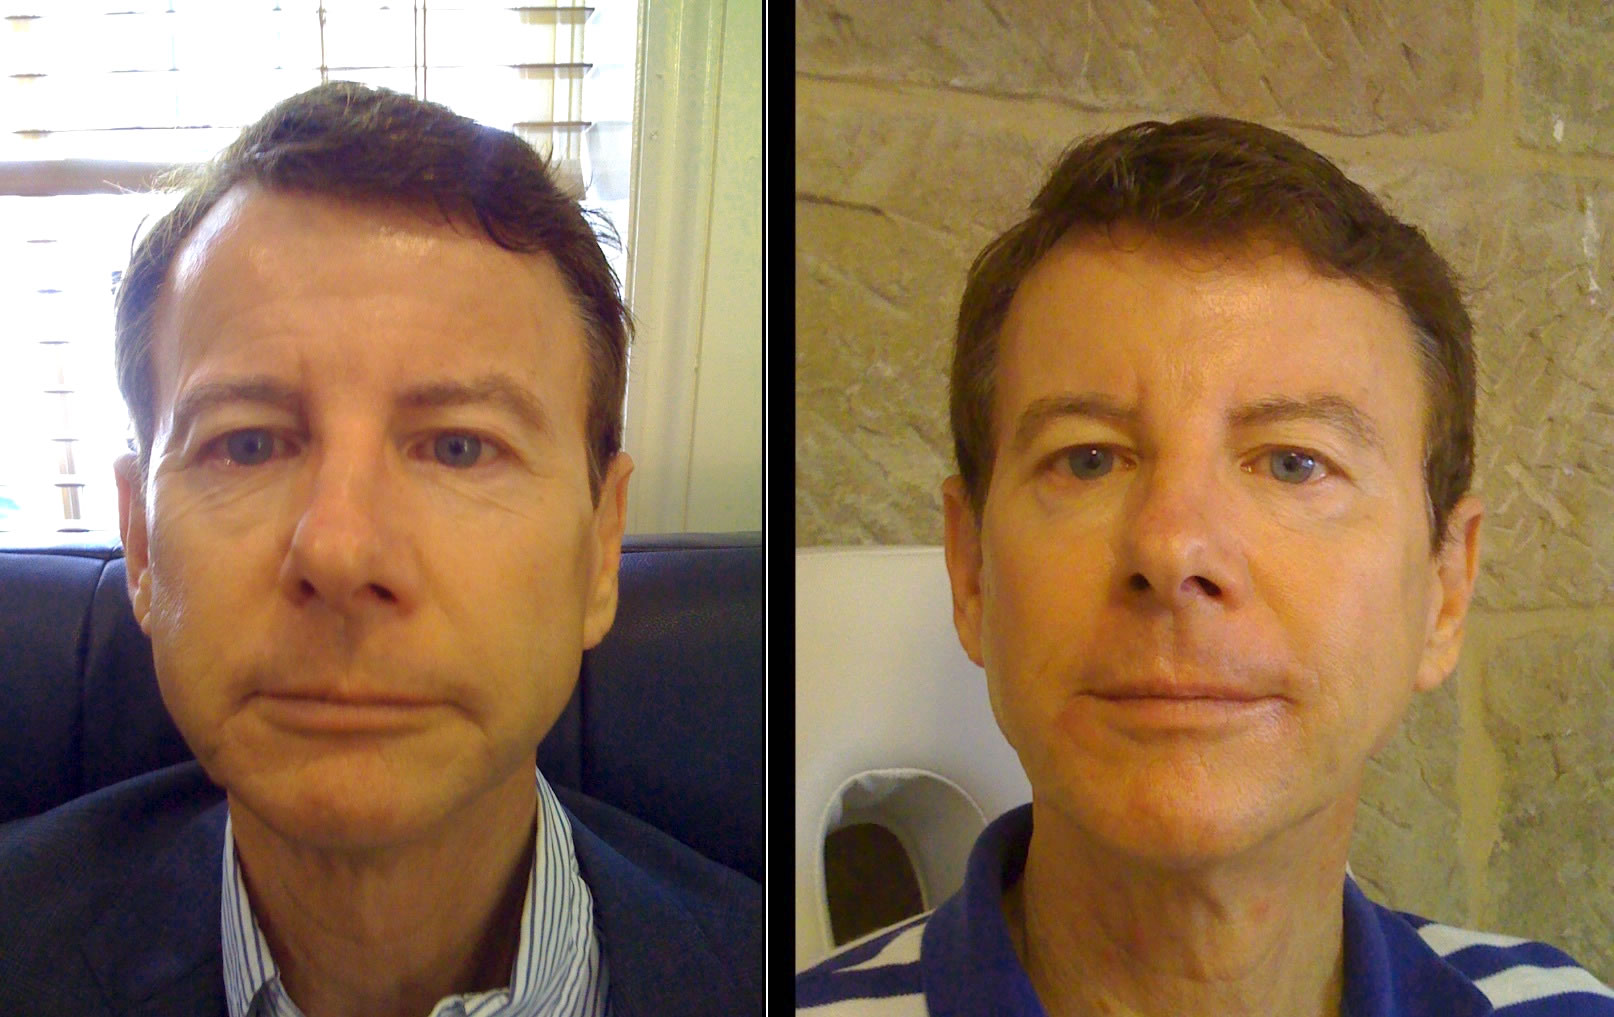 Filler in lower face before & after *